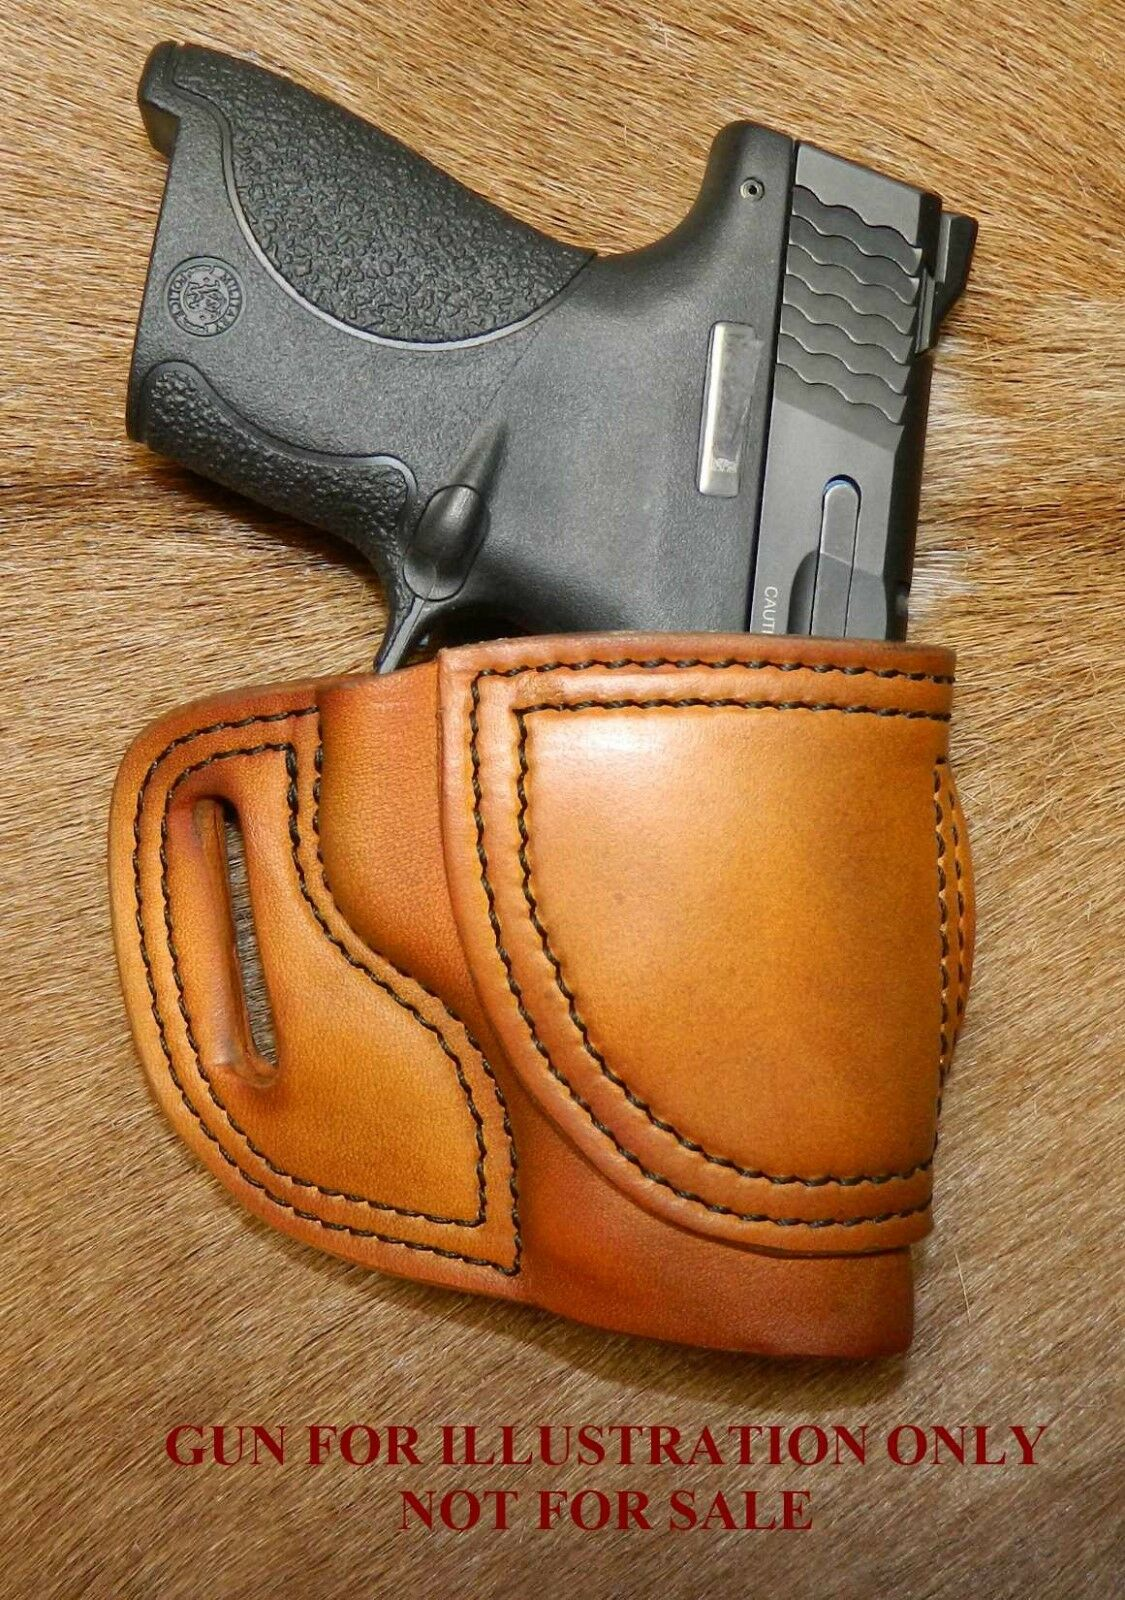 Gary C's Avenger  XH  OWB Right Hand HOLSTER S&W M&P Shield 40cal  9mm ; leather